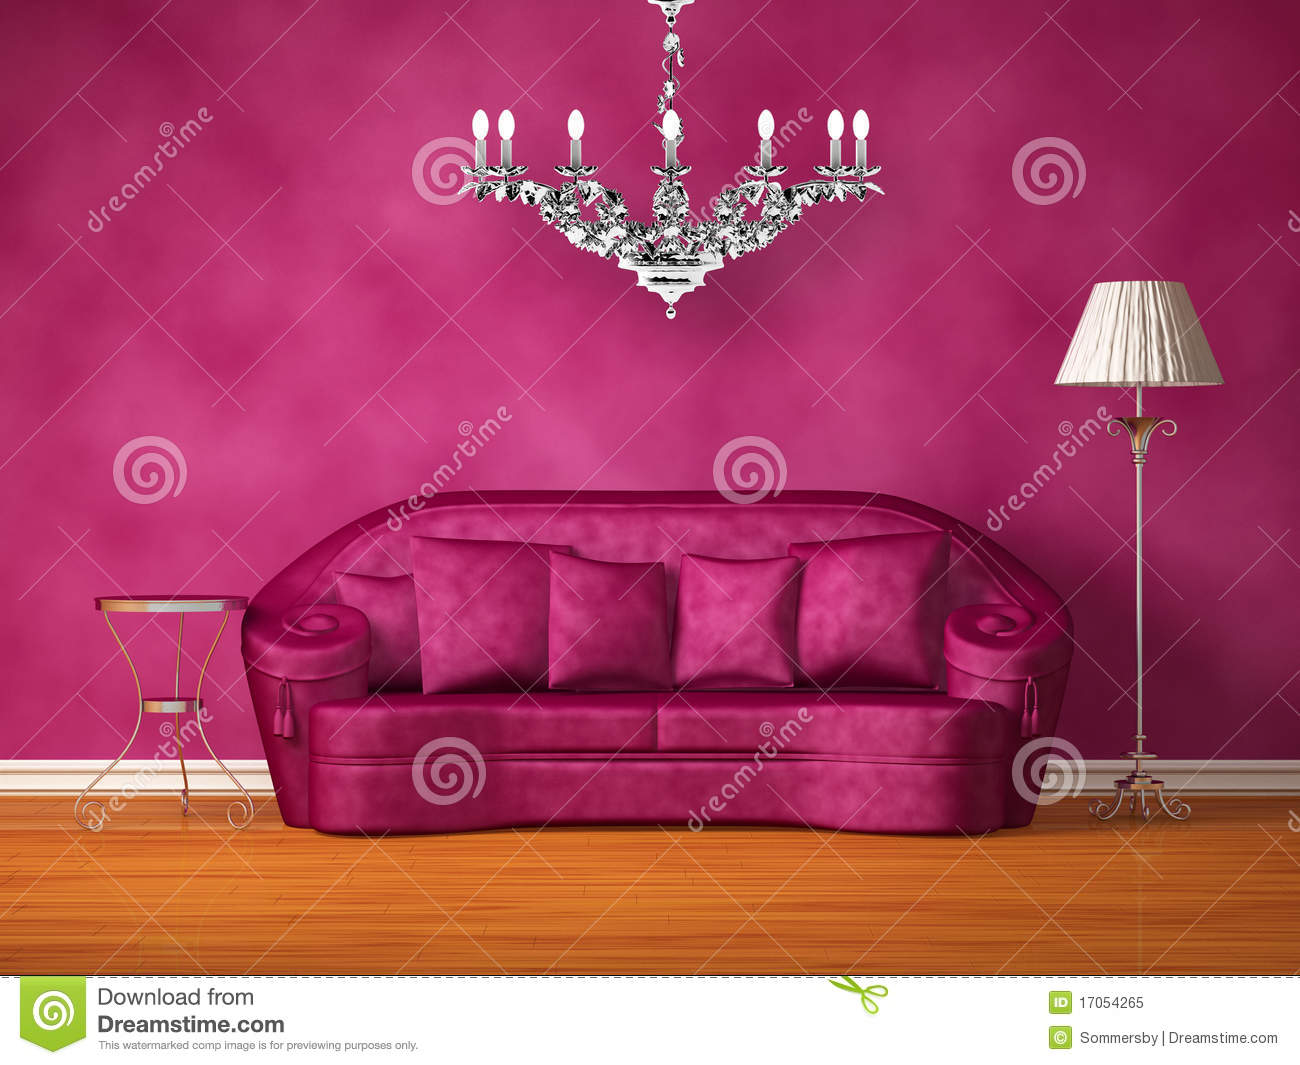 Purple couch with table, lamp and chandelier